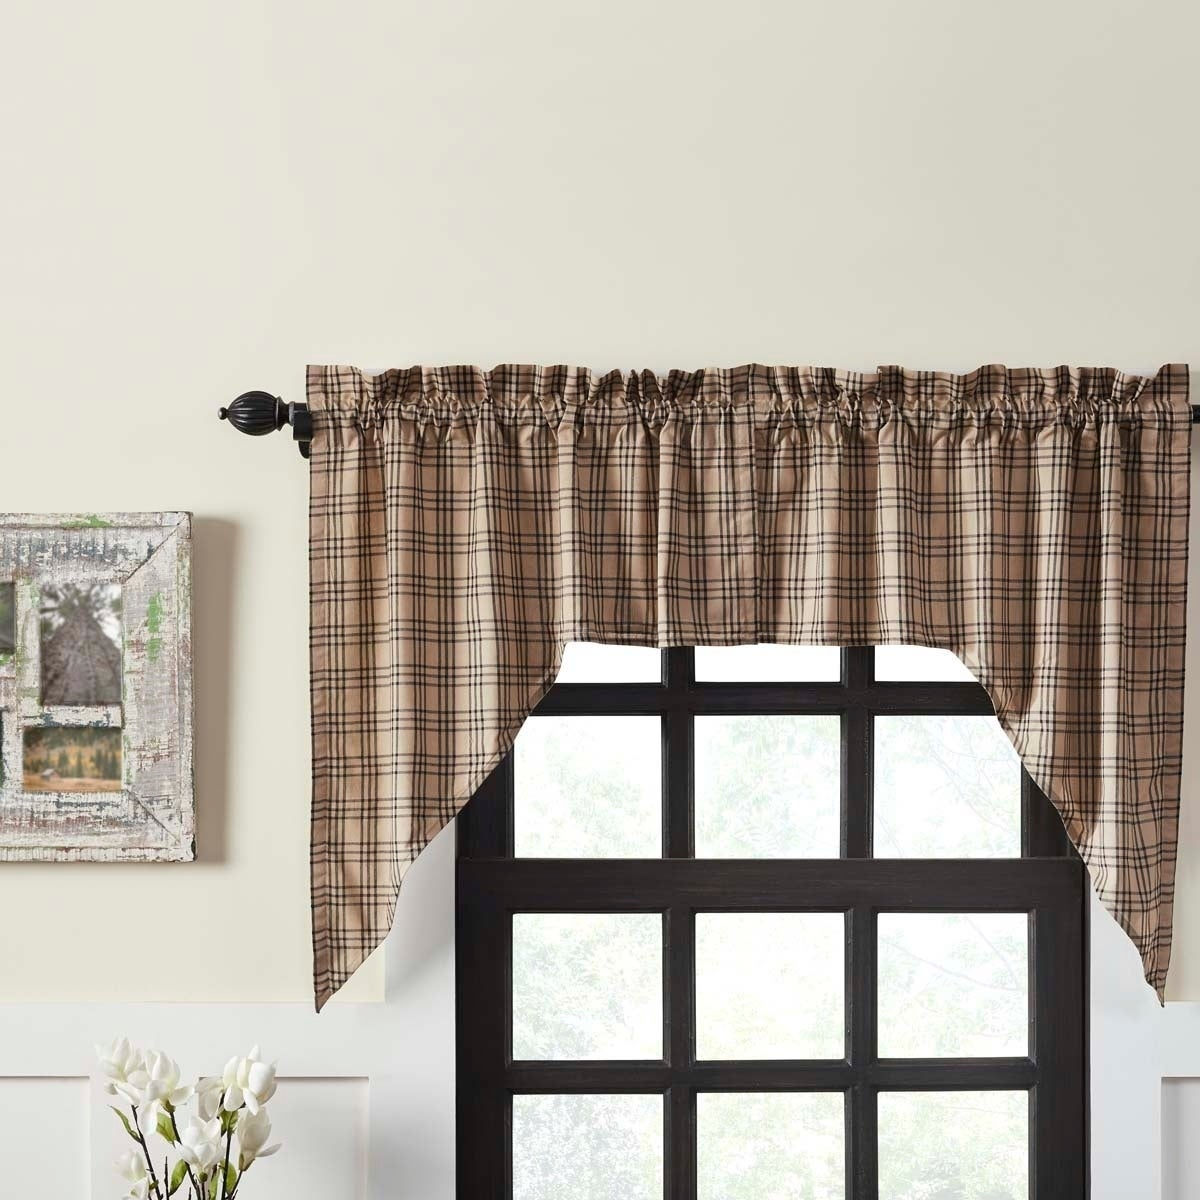 Details About Farmhouse Kitchen Curtains Vhc Sawyer Mill Plaid Swag Pair Regarding Cumberland Tier Pair Rod Pocket Cotton Buffalo Check Kitchen Curtains (View 10 of 20)